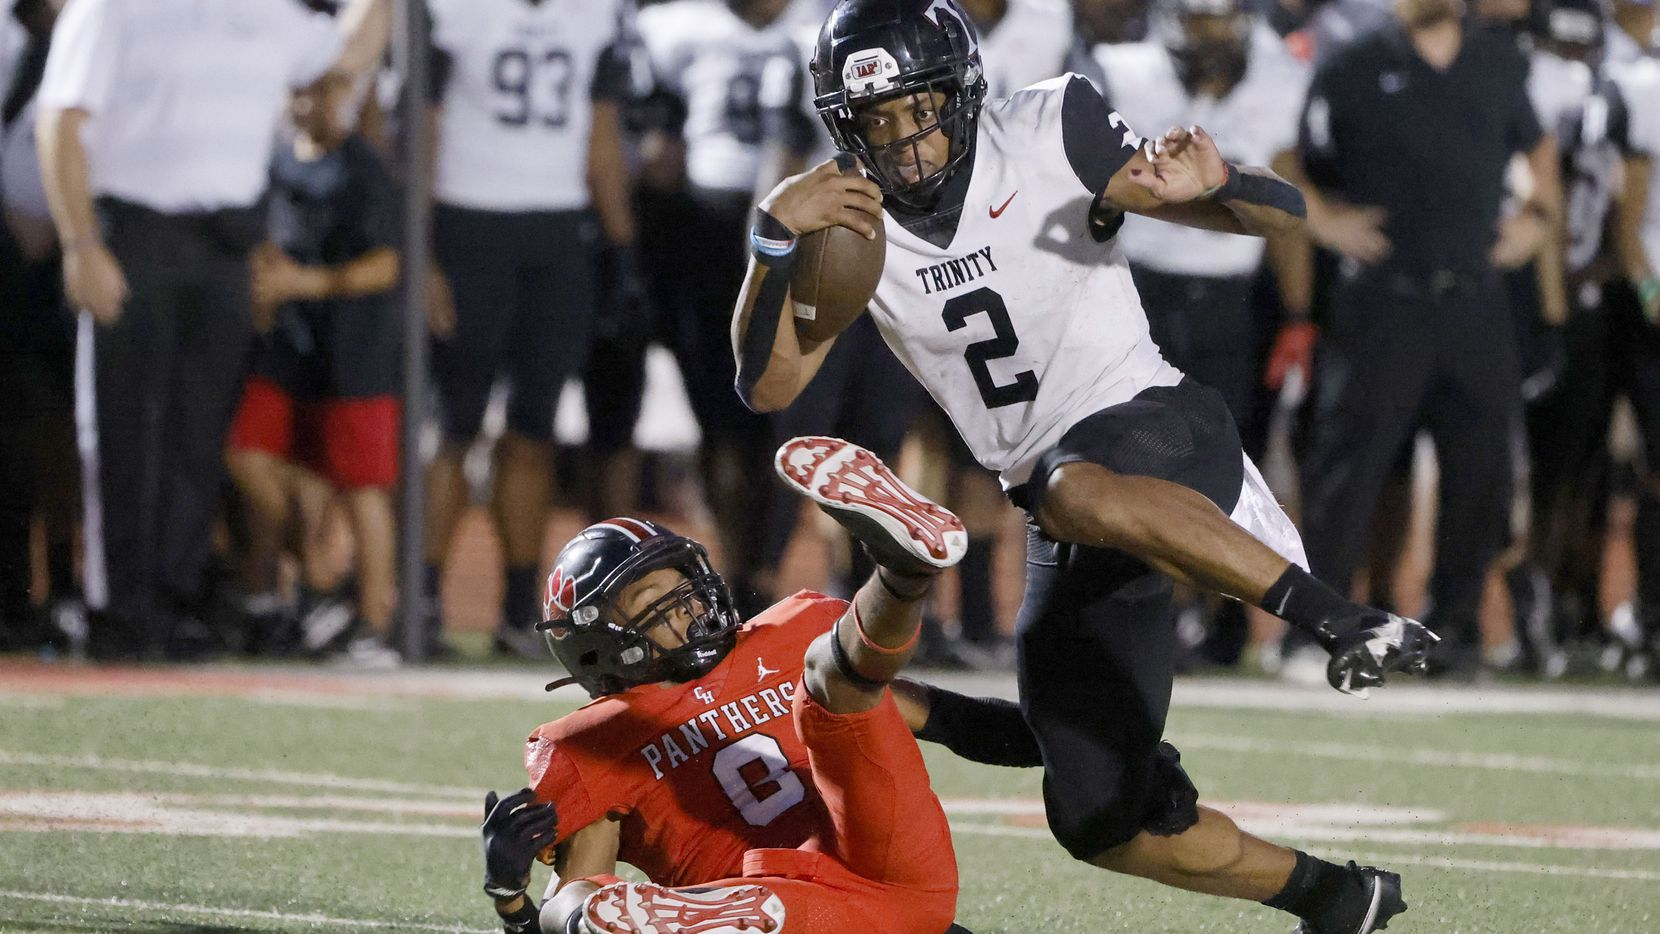 Euless Trinity quarterback Ollie Gordon (2) ran for 201 yards in Euless Trinity's 30-27 win over Colleyville Heritage on Friday. (Michael Ainsworth/Special Contributor)